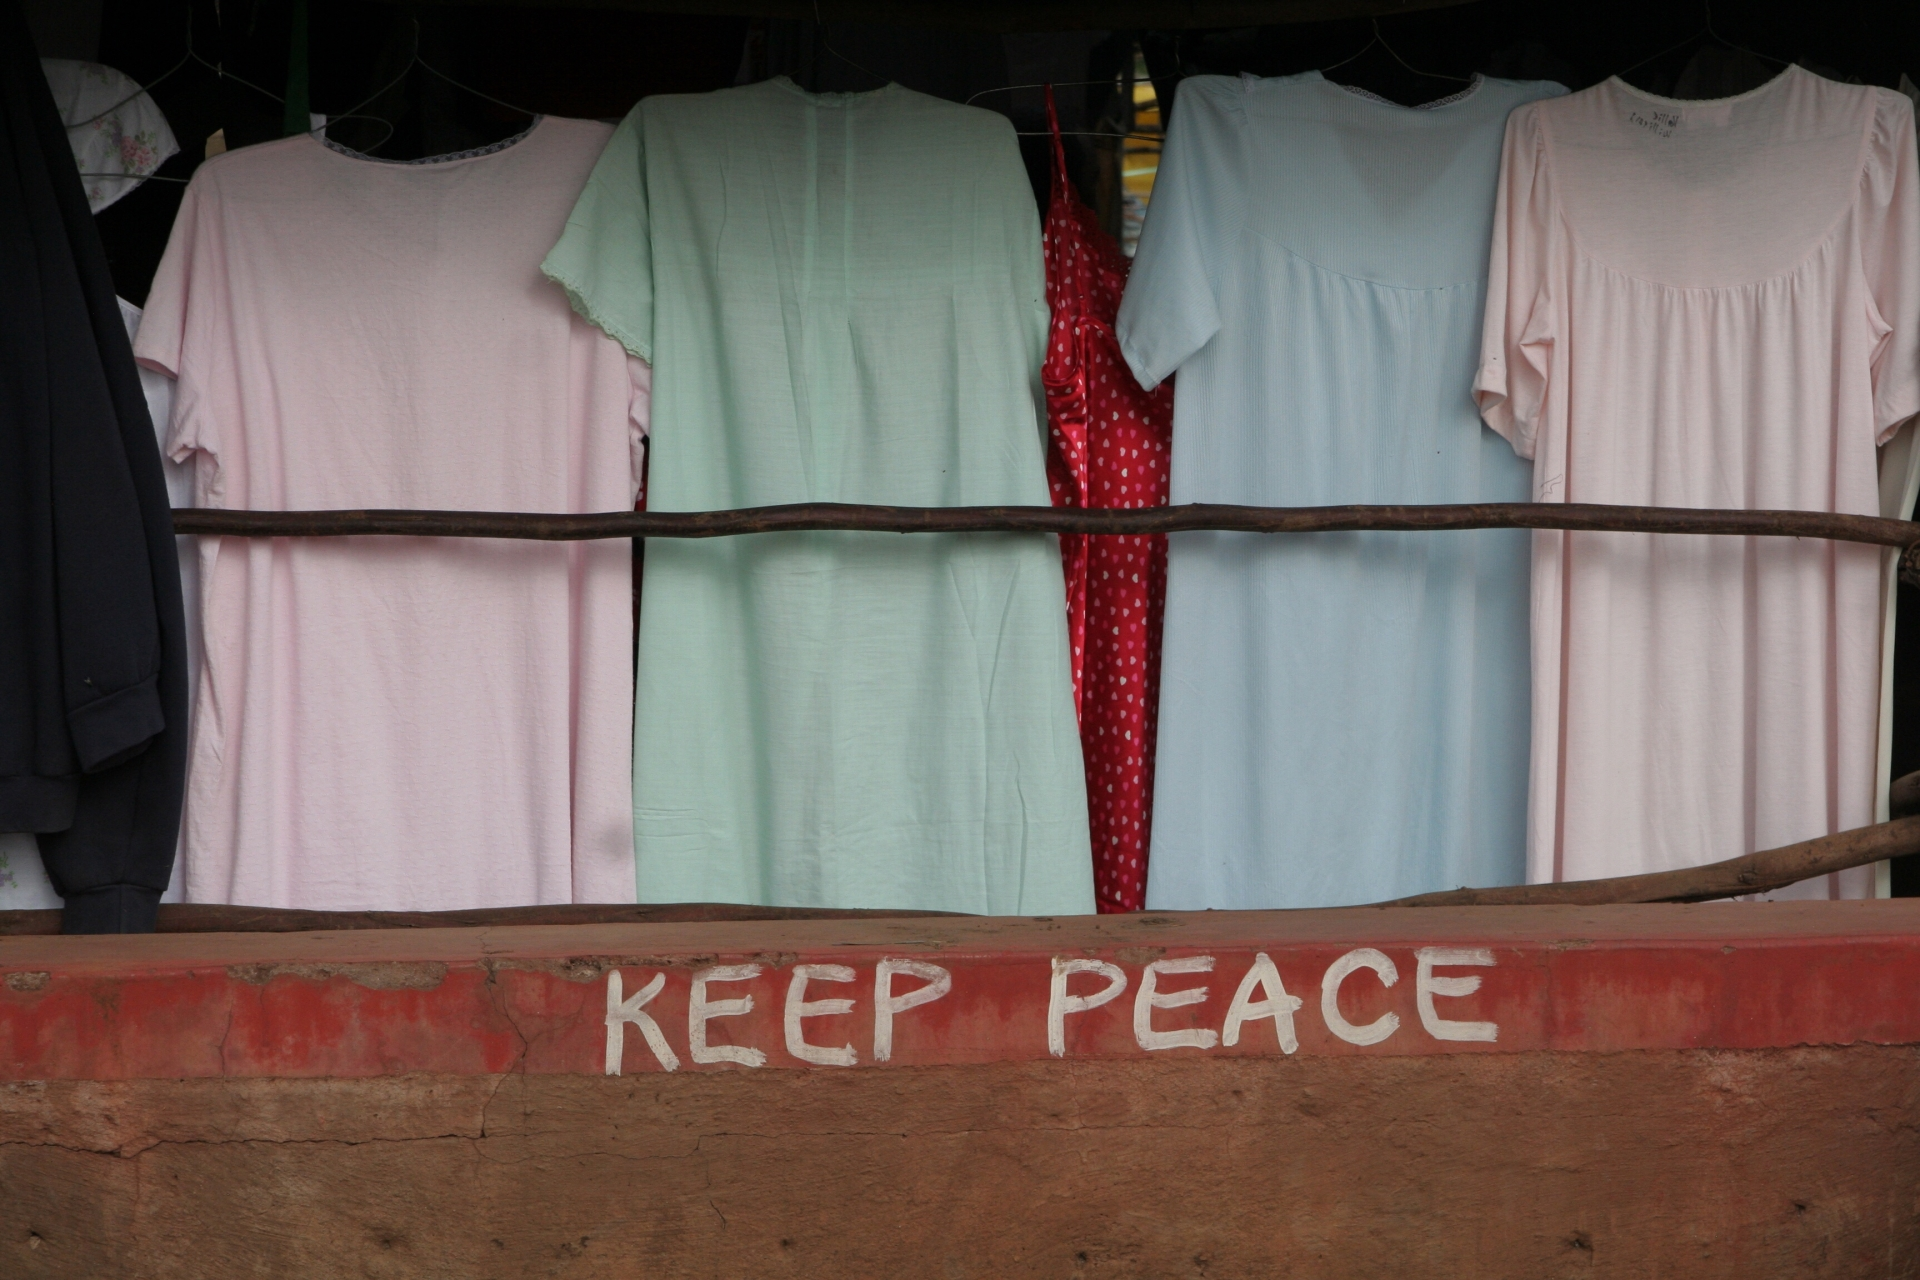 Kenya Nairobi Post Election market scene children's dresses Keep Peace graffiti art